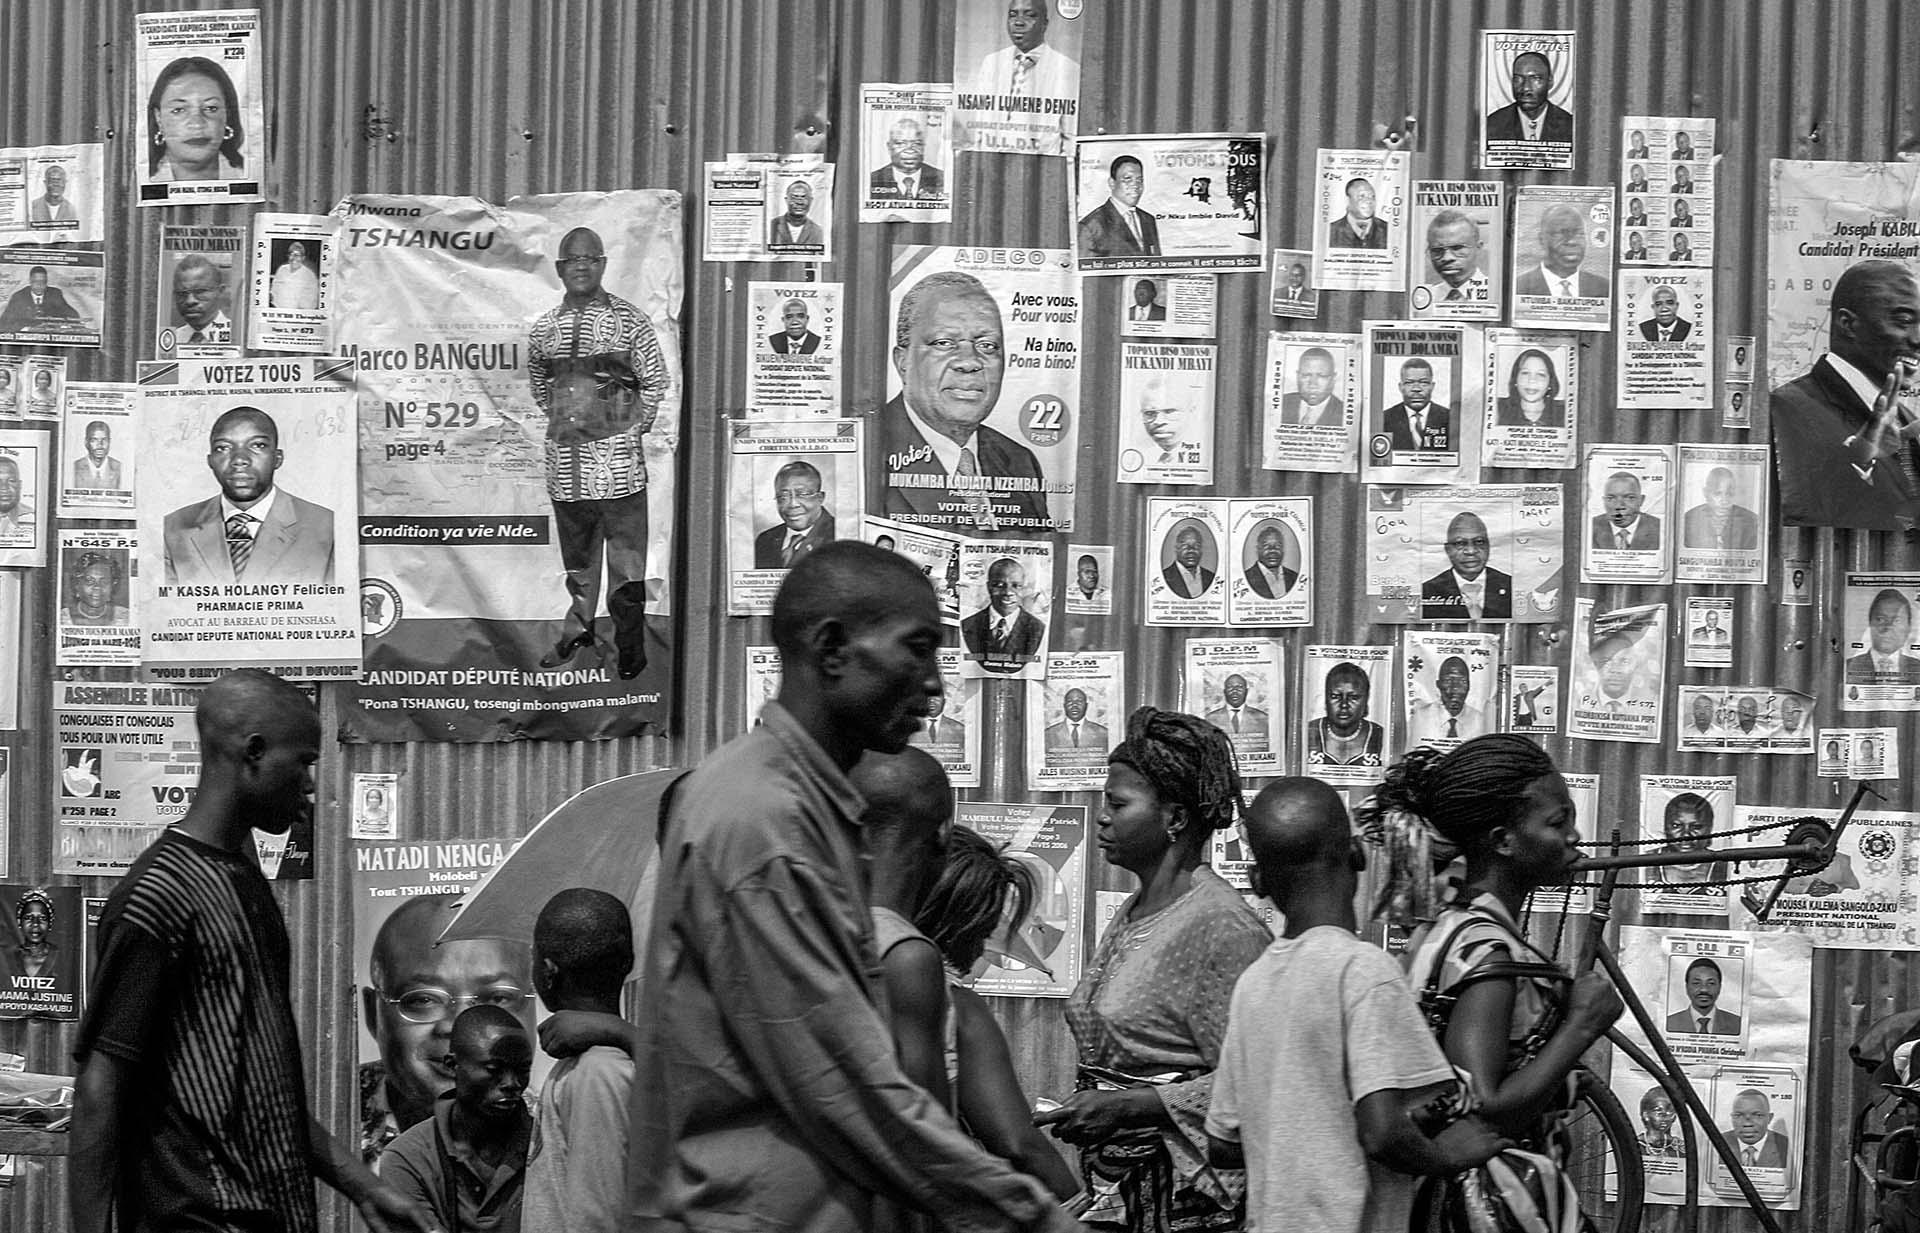 Posters of candidates for presidential and national elections occupy every inch of the wall in Kinshasa, July 25, 2006. There are 32 presidential candidate alone. As the presidential and national election draw near, the mood in the capital became tense. The war-torn Central African republic last had elections more than 40 years previously.